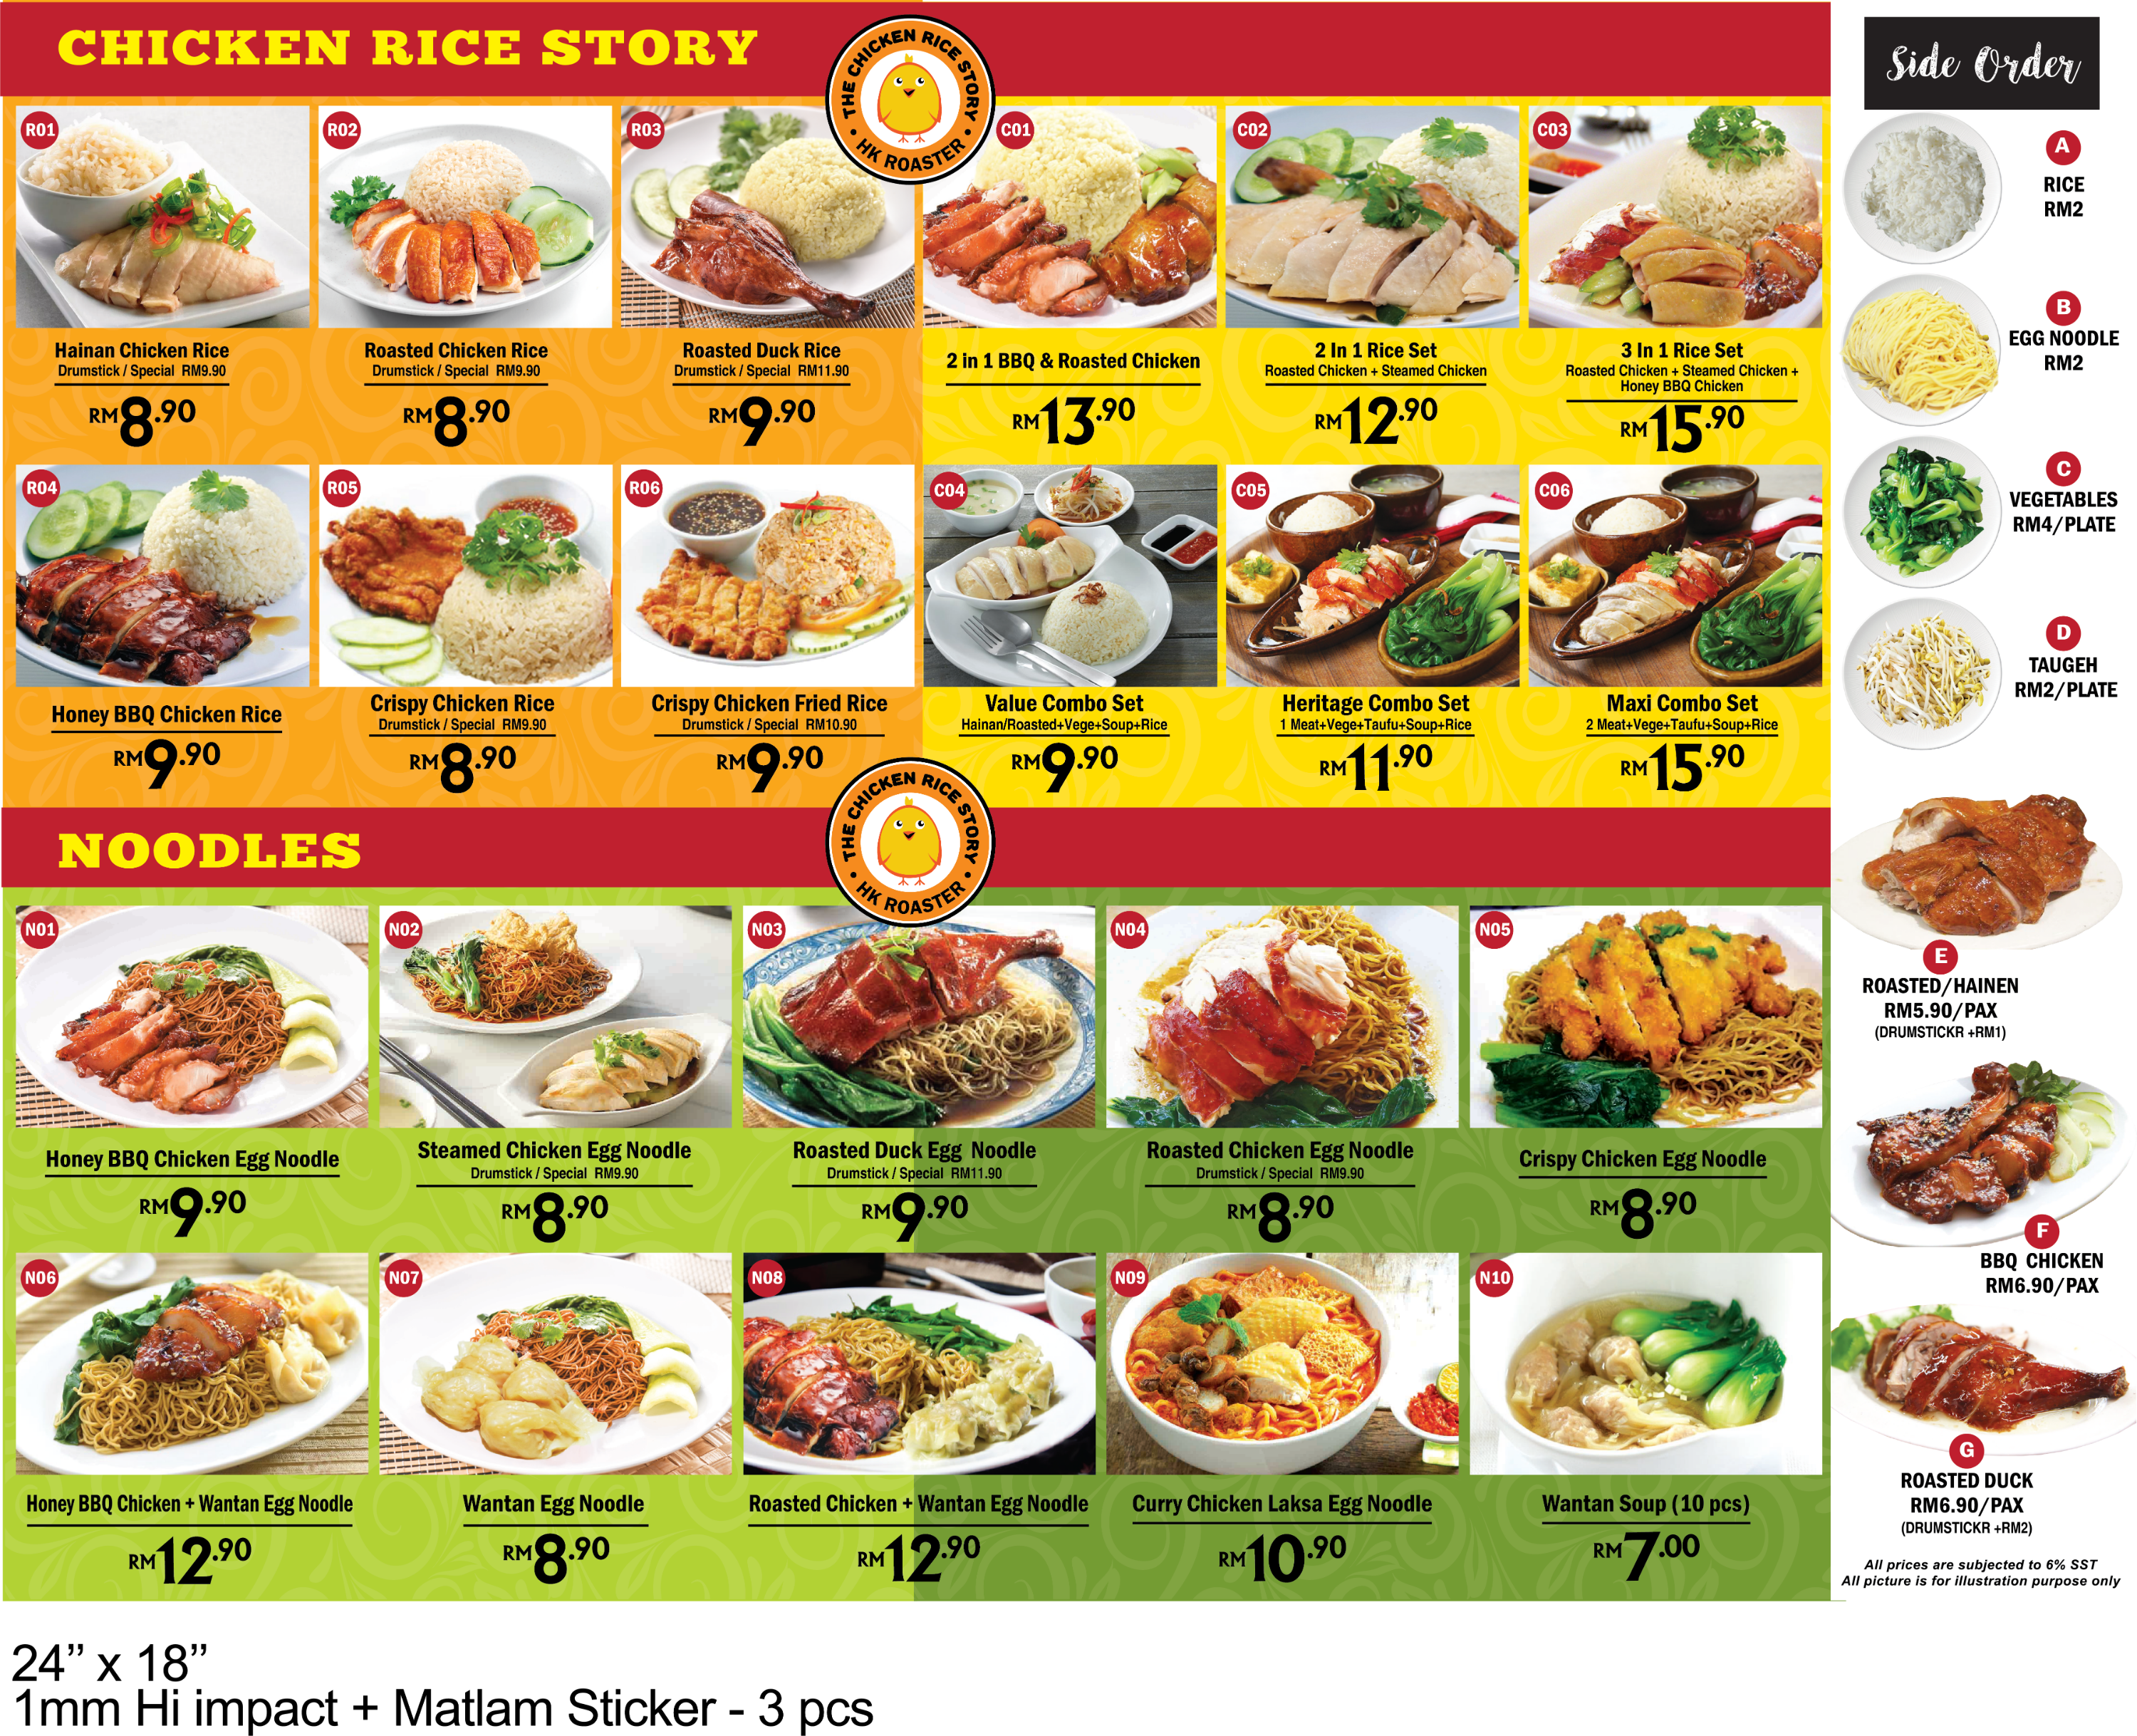 THE CHICKEN RICE STORY MENU